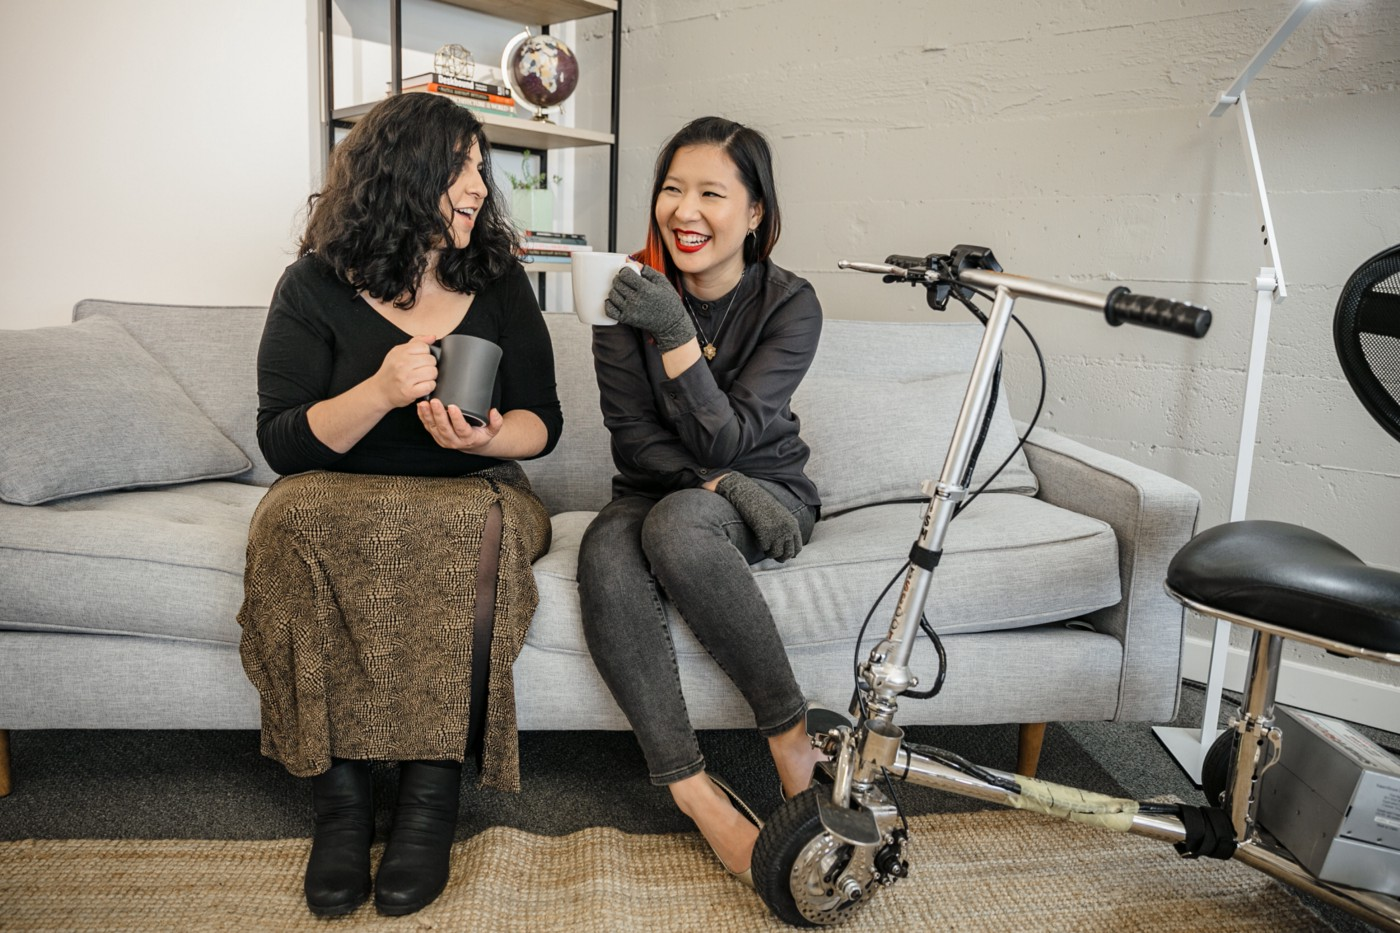 Two disabled women chat on a couch, both holding coffee mugs. An electric lightweight mobility scooter rests nearby.